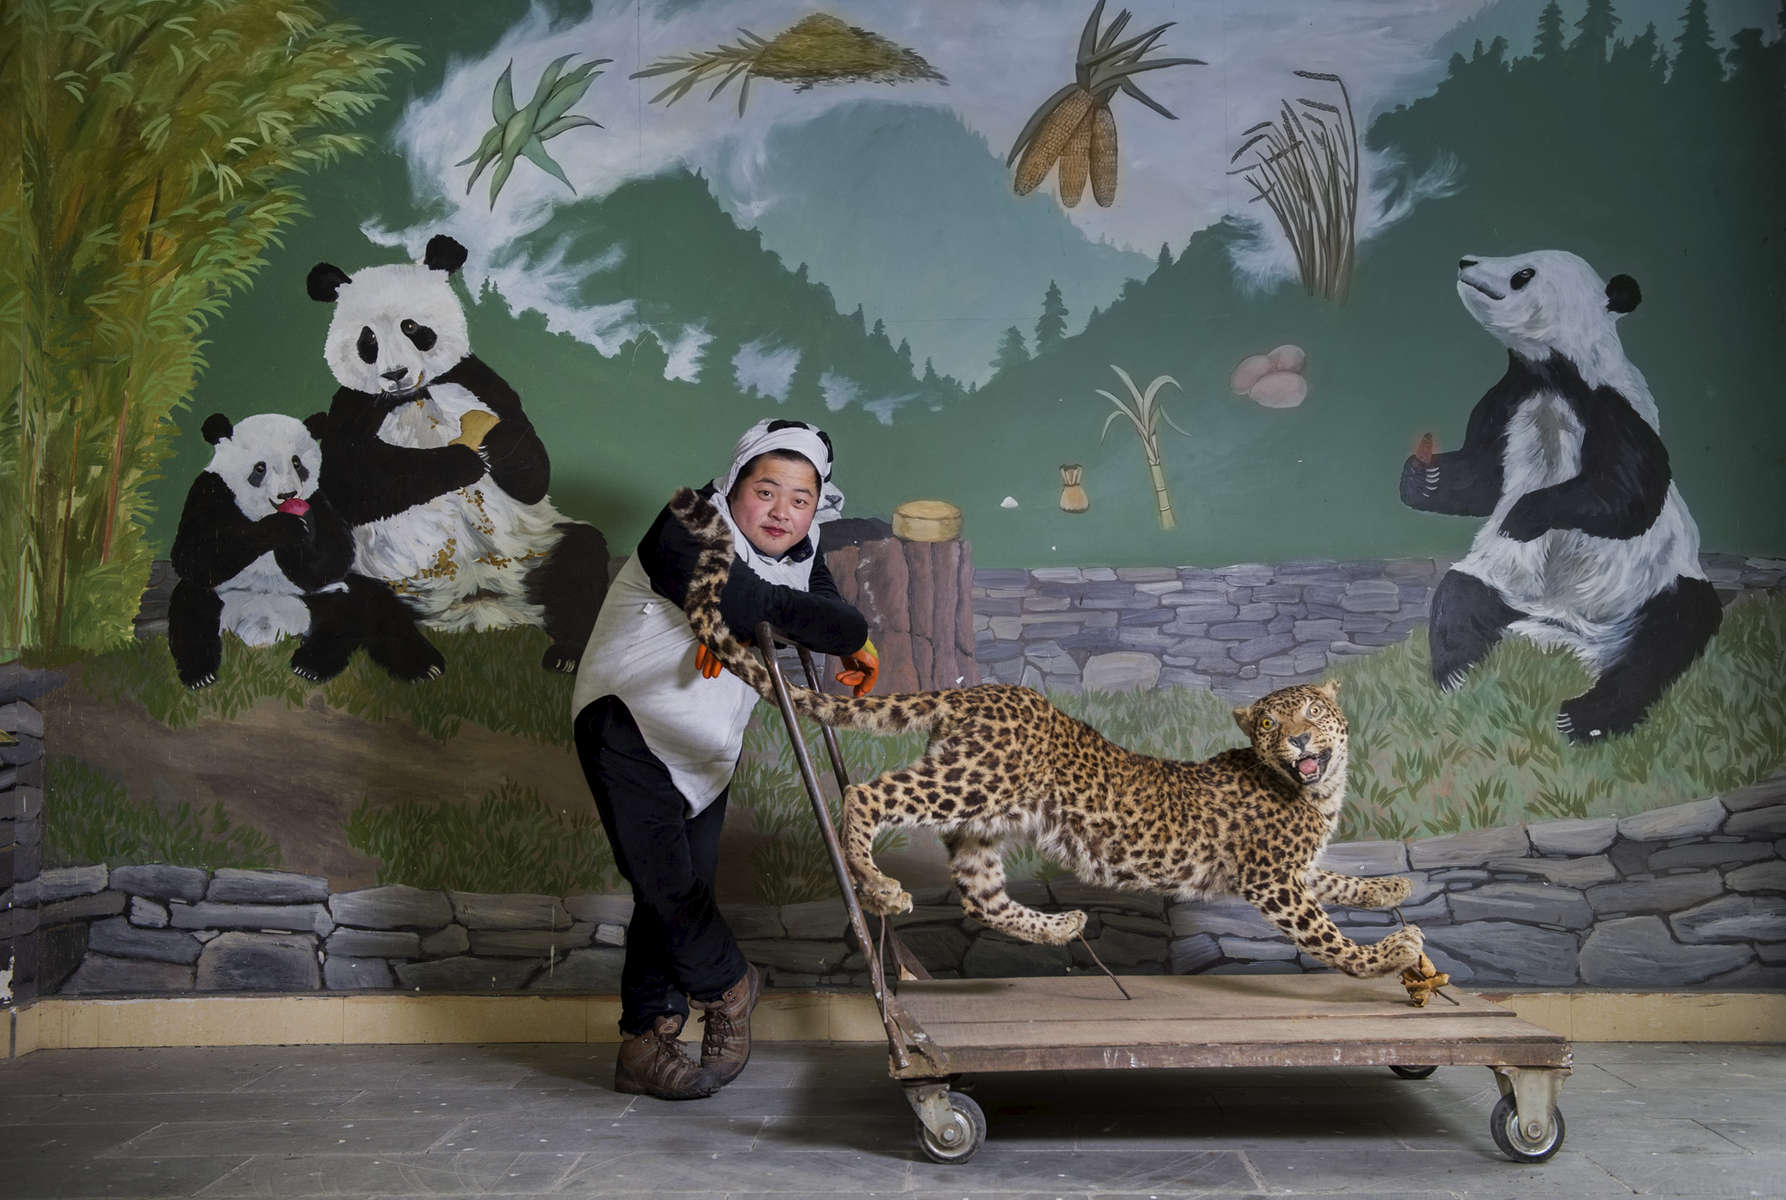 Gao Xiao Wen poses for portraits at  the Wolong China Conservation and Research Center for the Giant Panda in Sichuan province, China November 4, 2015.  (Photo by Ami Vitale)